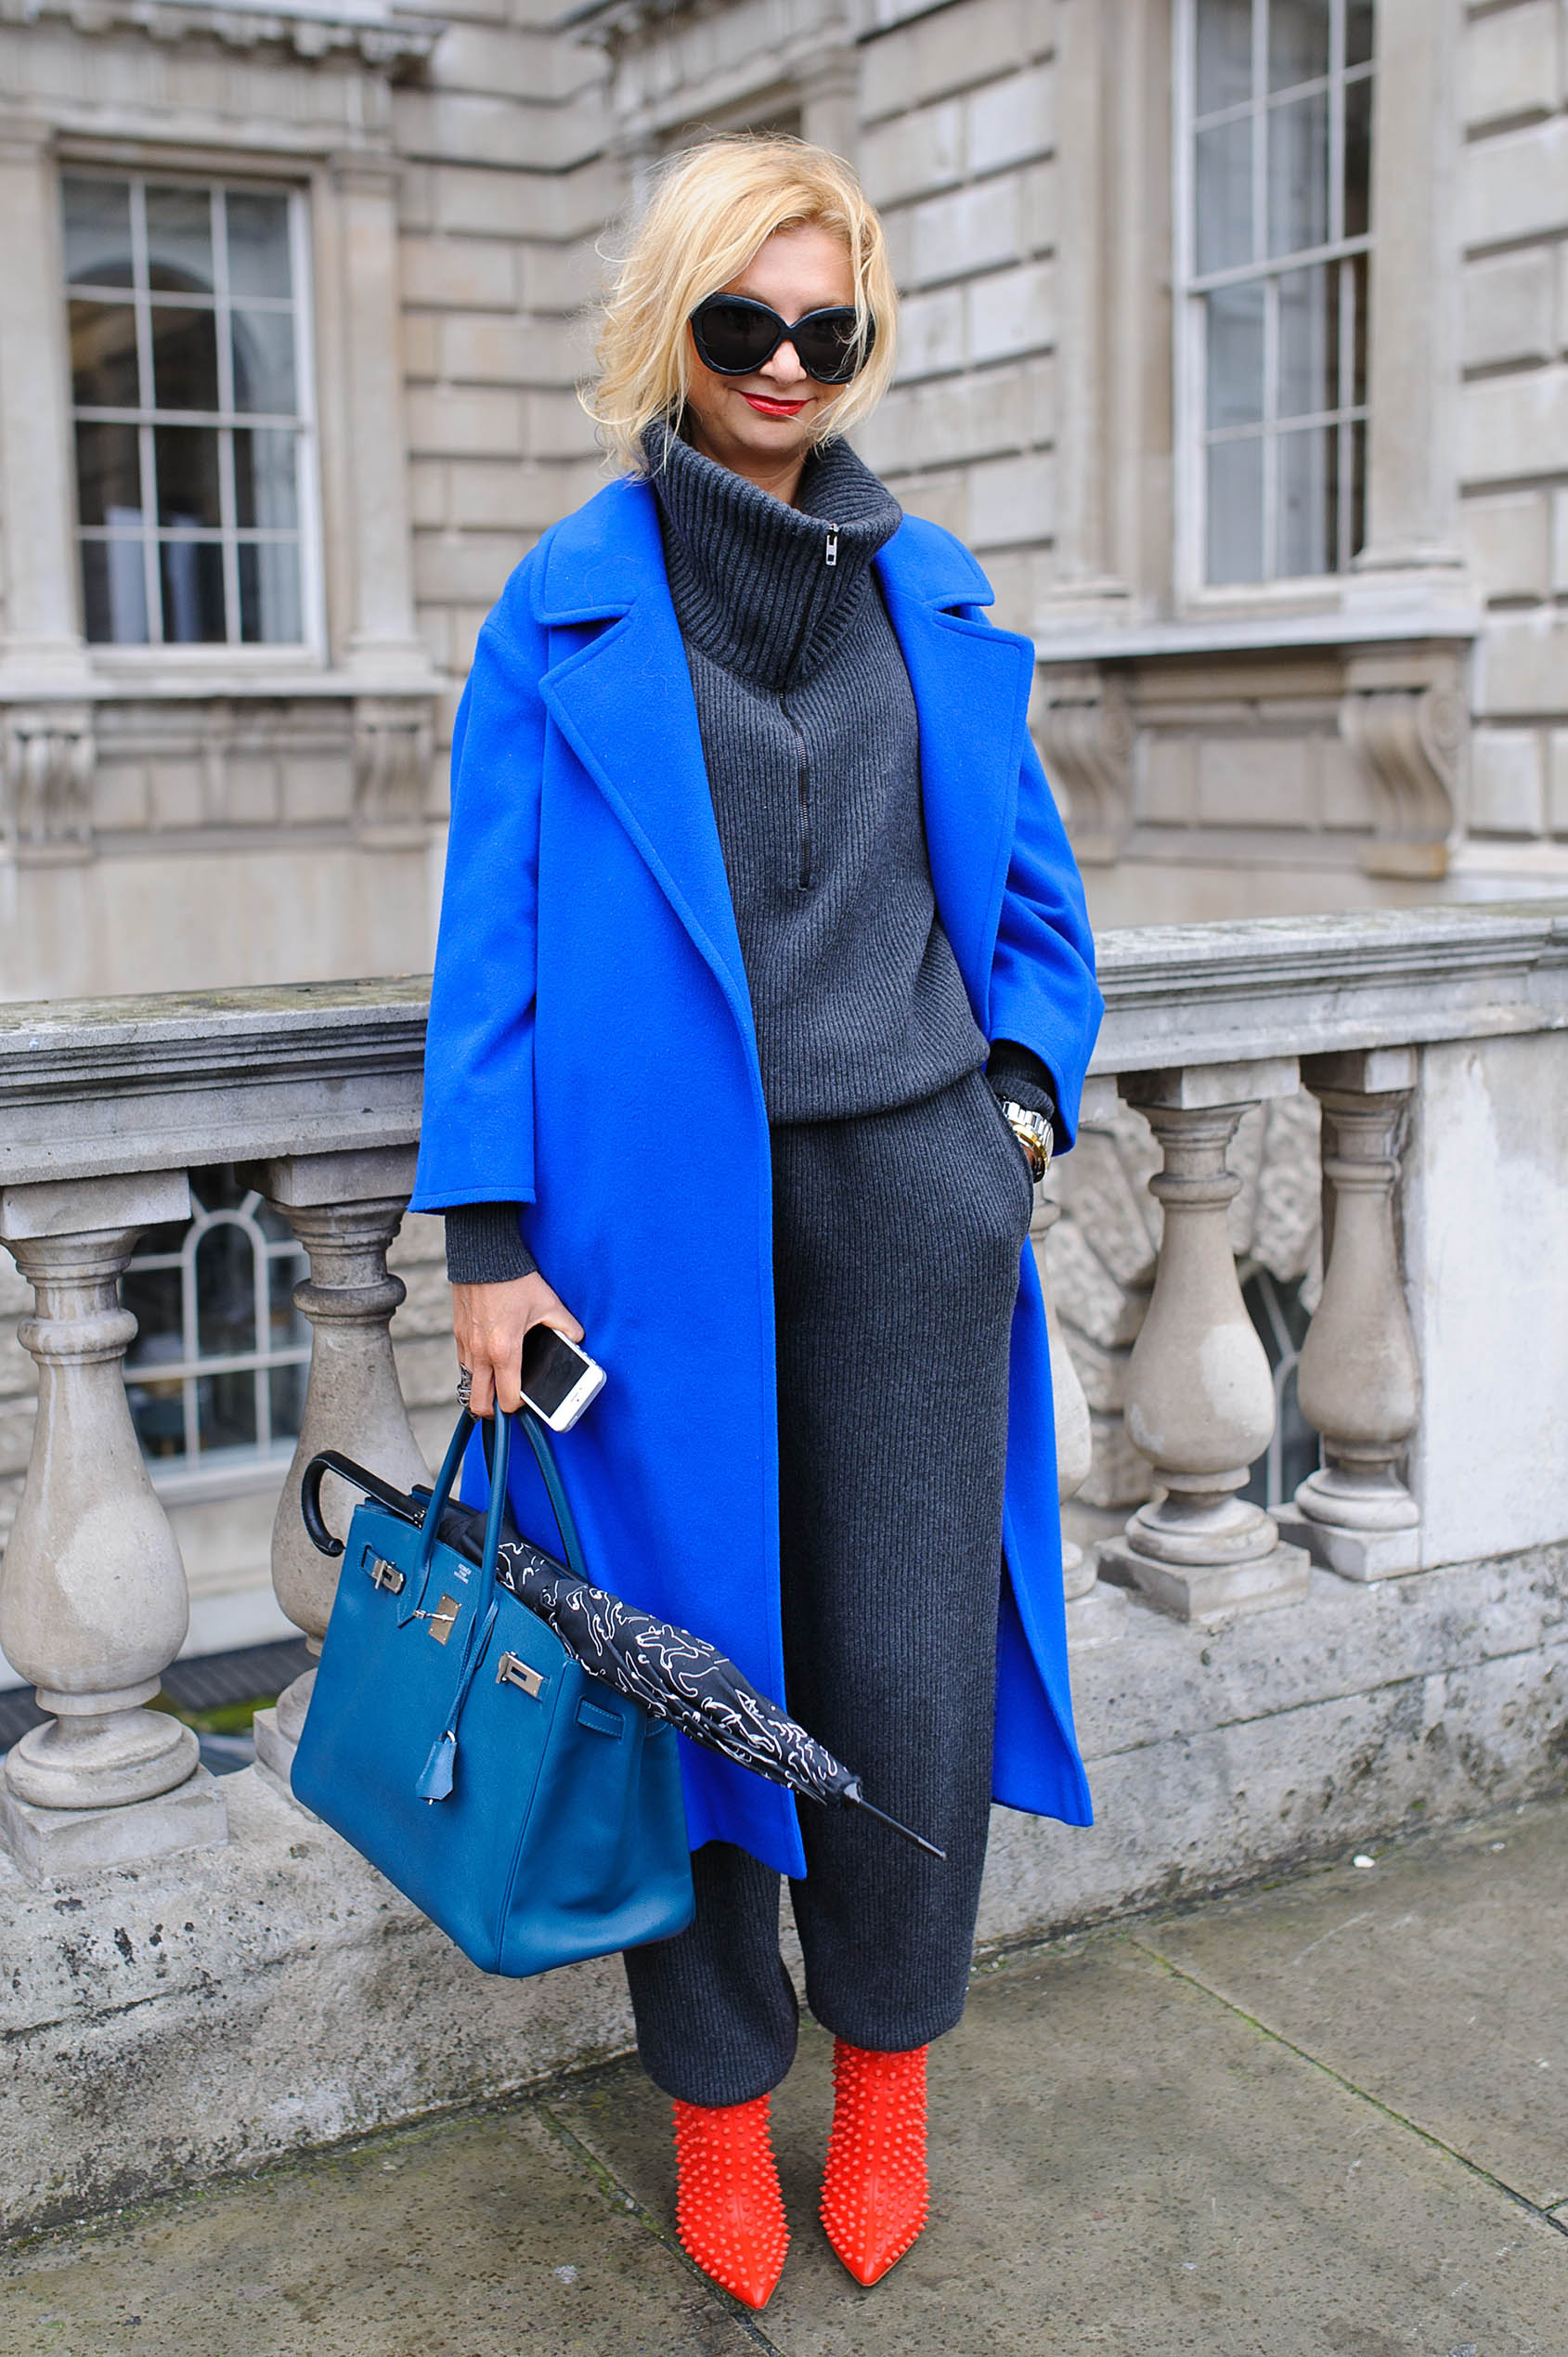 <p>Cold weather means fluffy oversized sweaters and comfy cardigans. Thesesilhouettes may not be as sleek as tailored blazers and suits, but with the right styling they can be just as chic. Take inspiration from these street stylers to find the perfect balance between polish and comfort. </p>